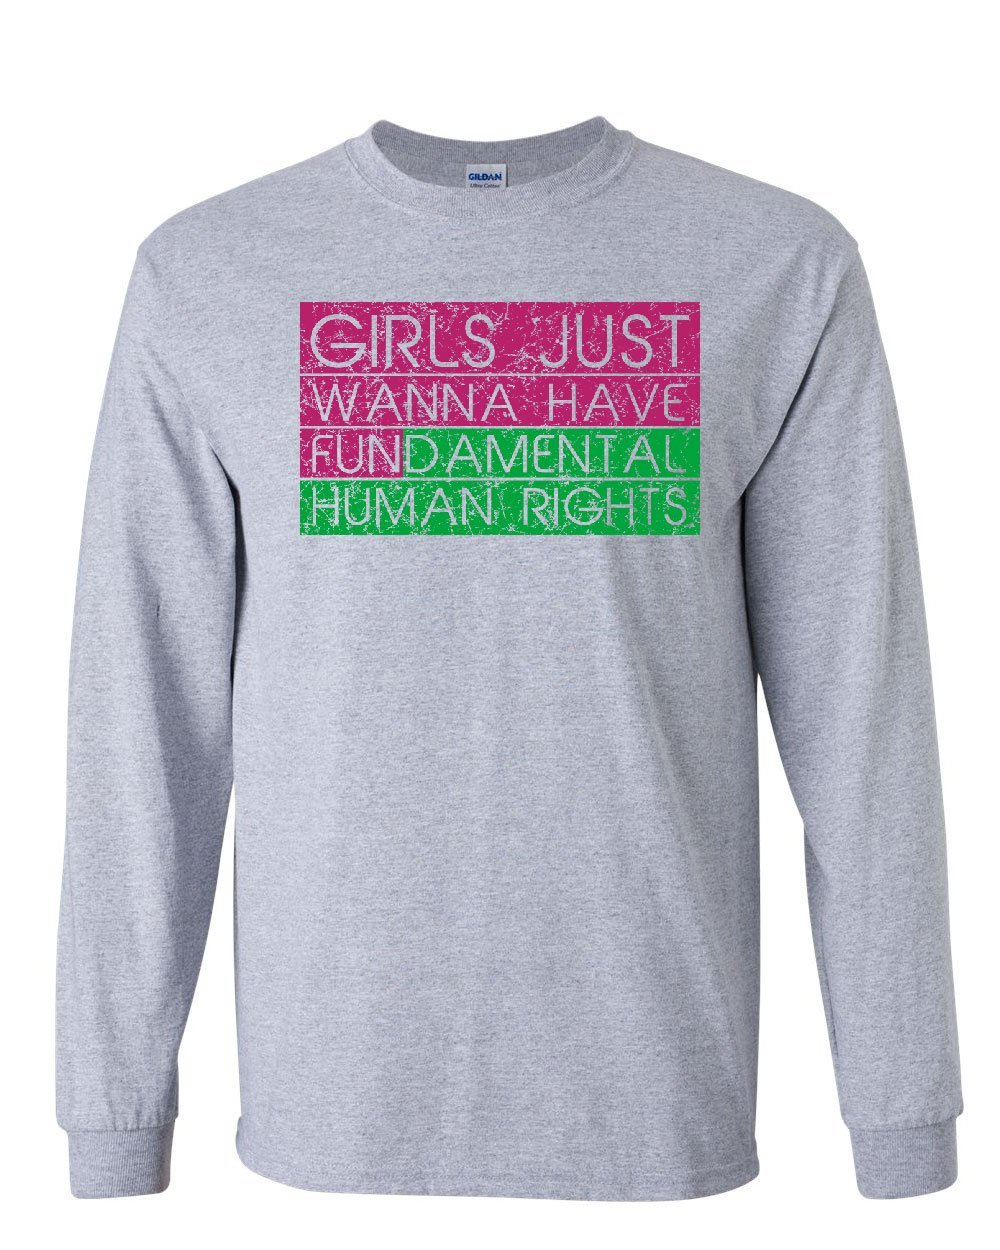 Girls Just Wanna Have Rights Long Sleeve T-Shirt Feminism Women's Equality Tee 100661-LT